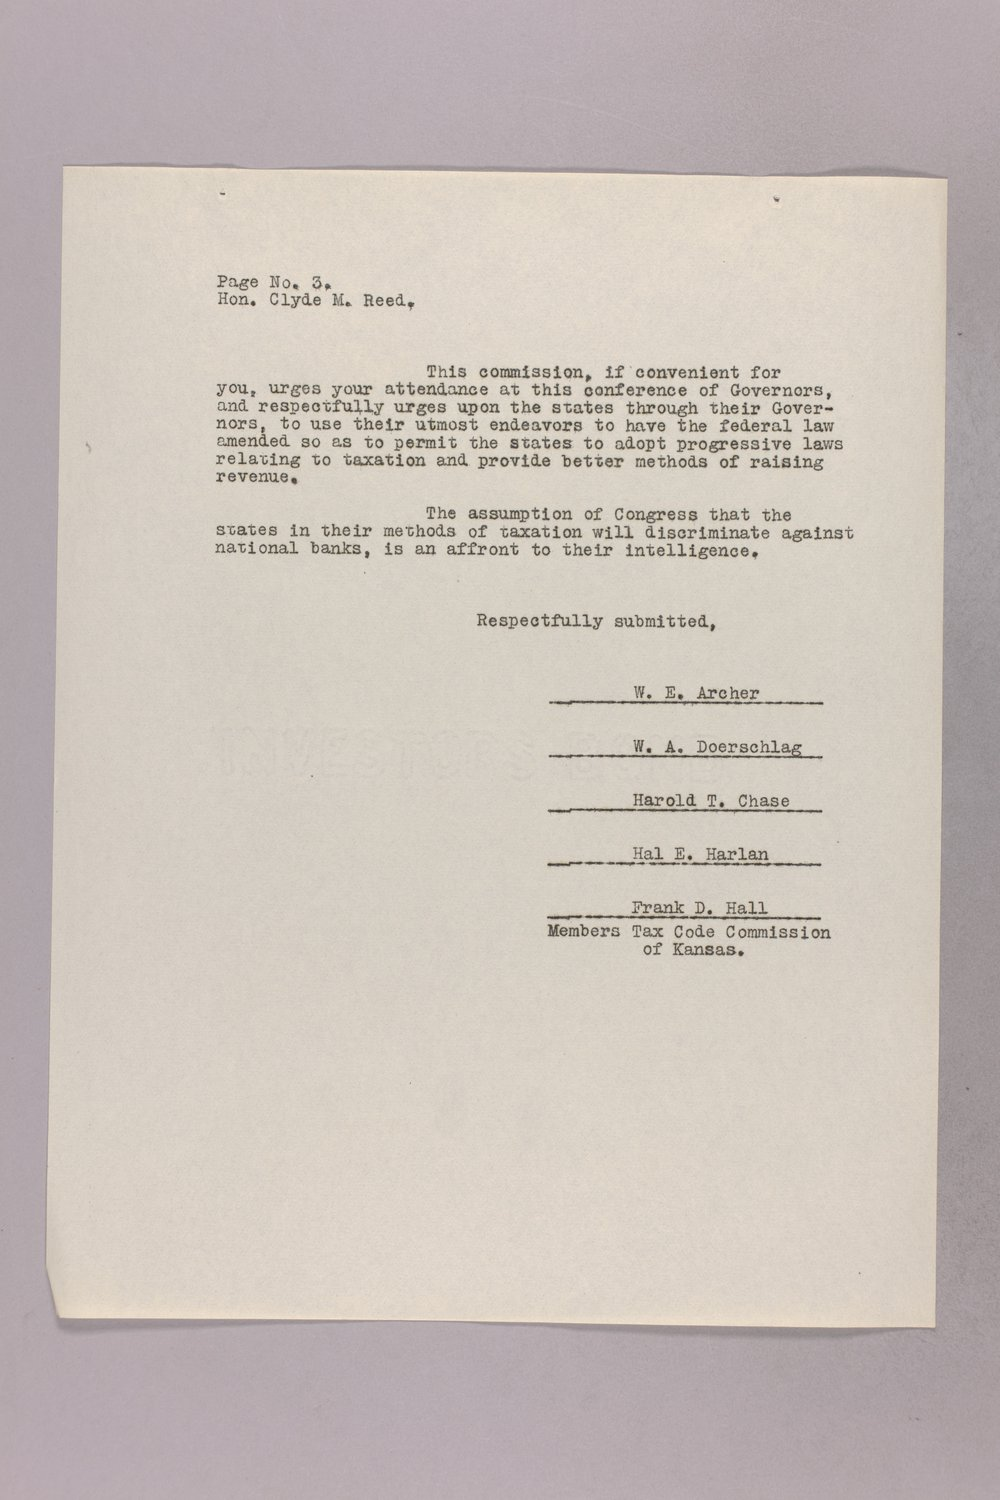 Governor Clyde M. Reed correspondence, Tax Code Commission - 11